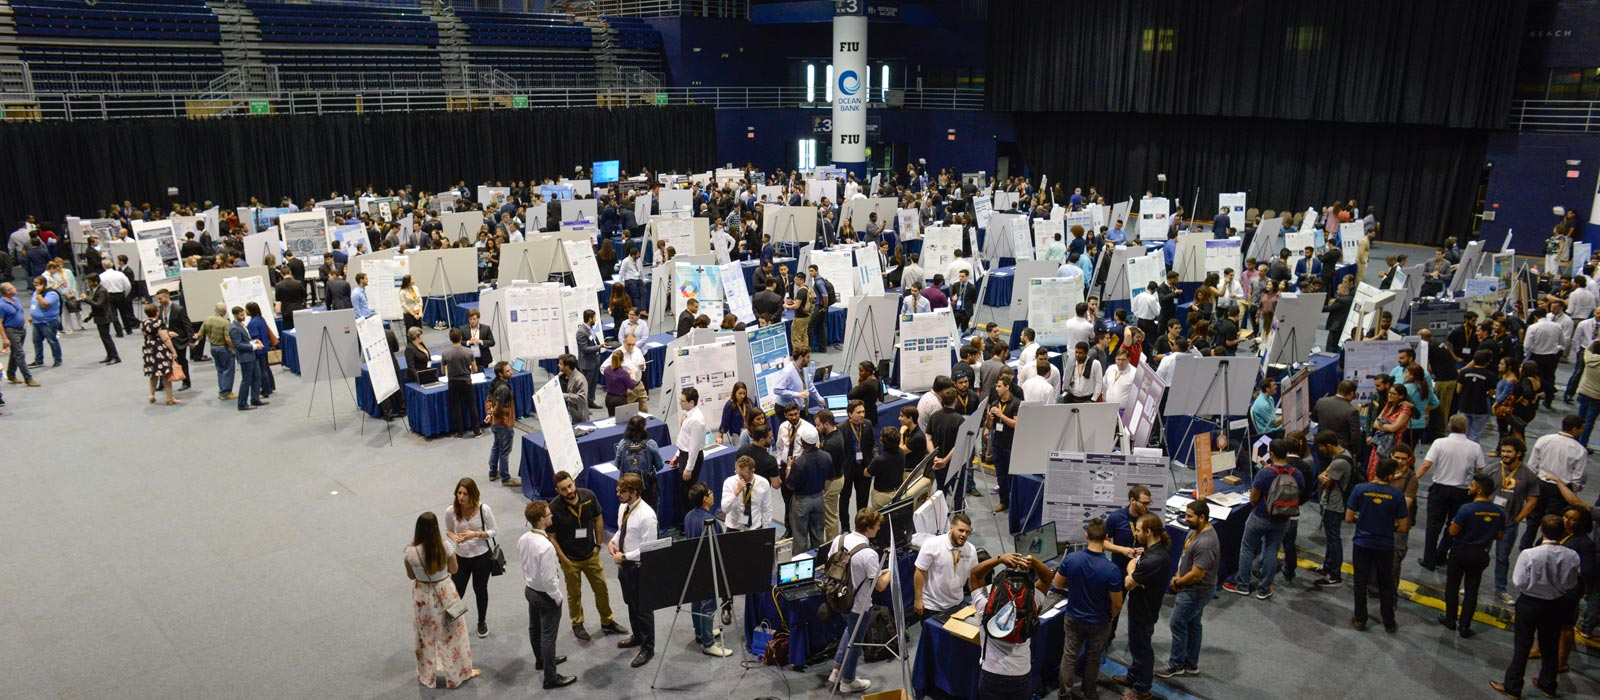 fiu-college-engineering-computing-senior-design-projects-crowd